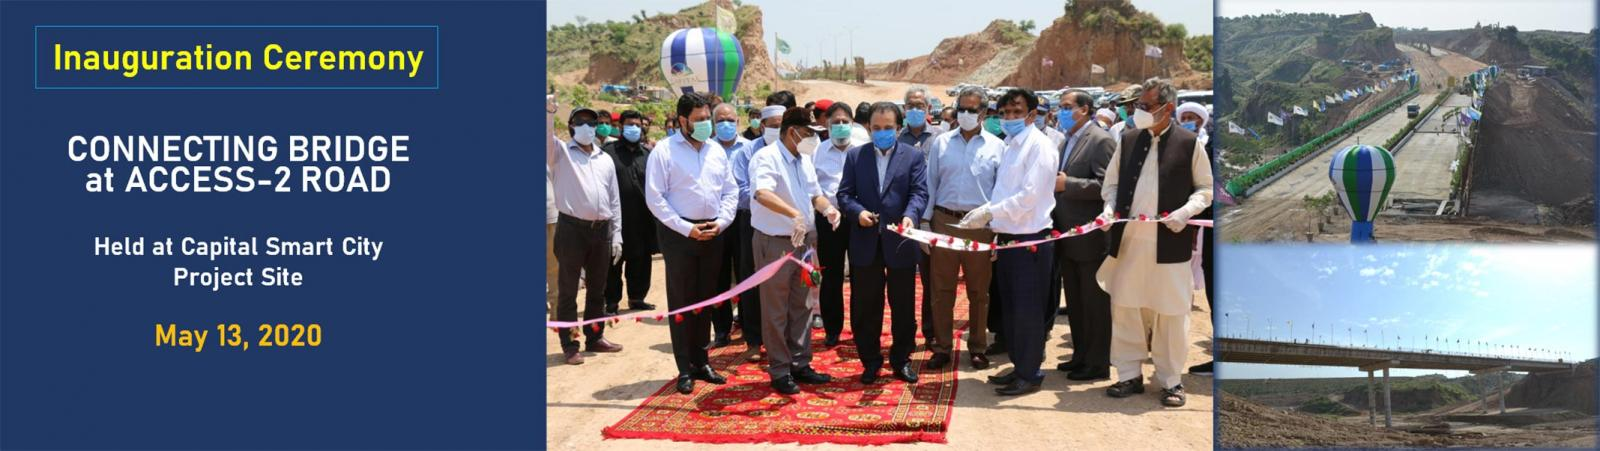 Inauguration of connecting Bridge at Access-2 Road